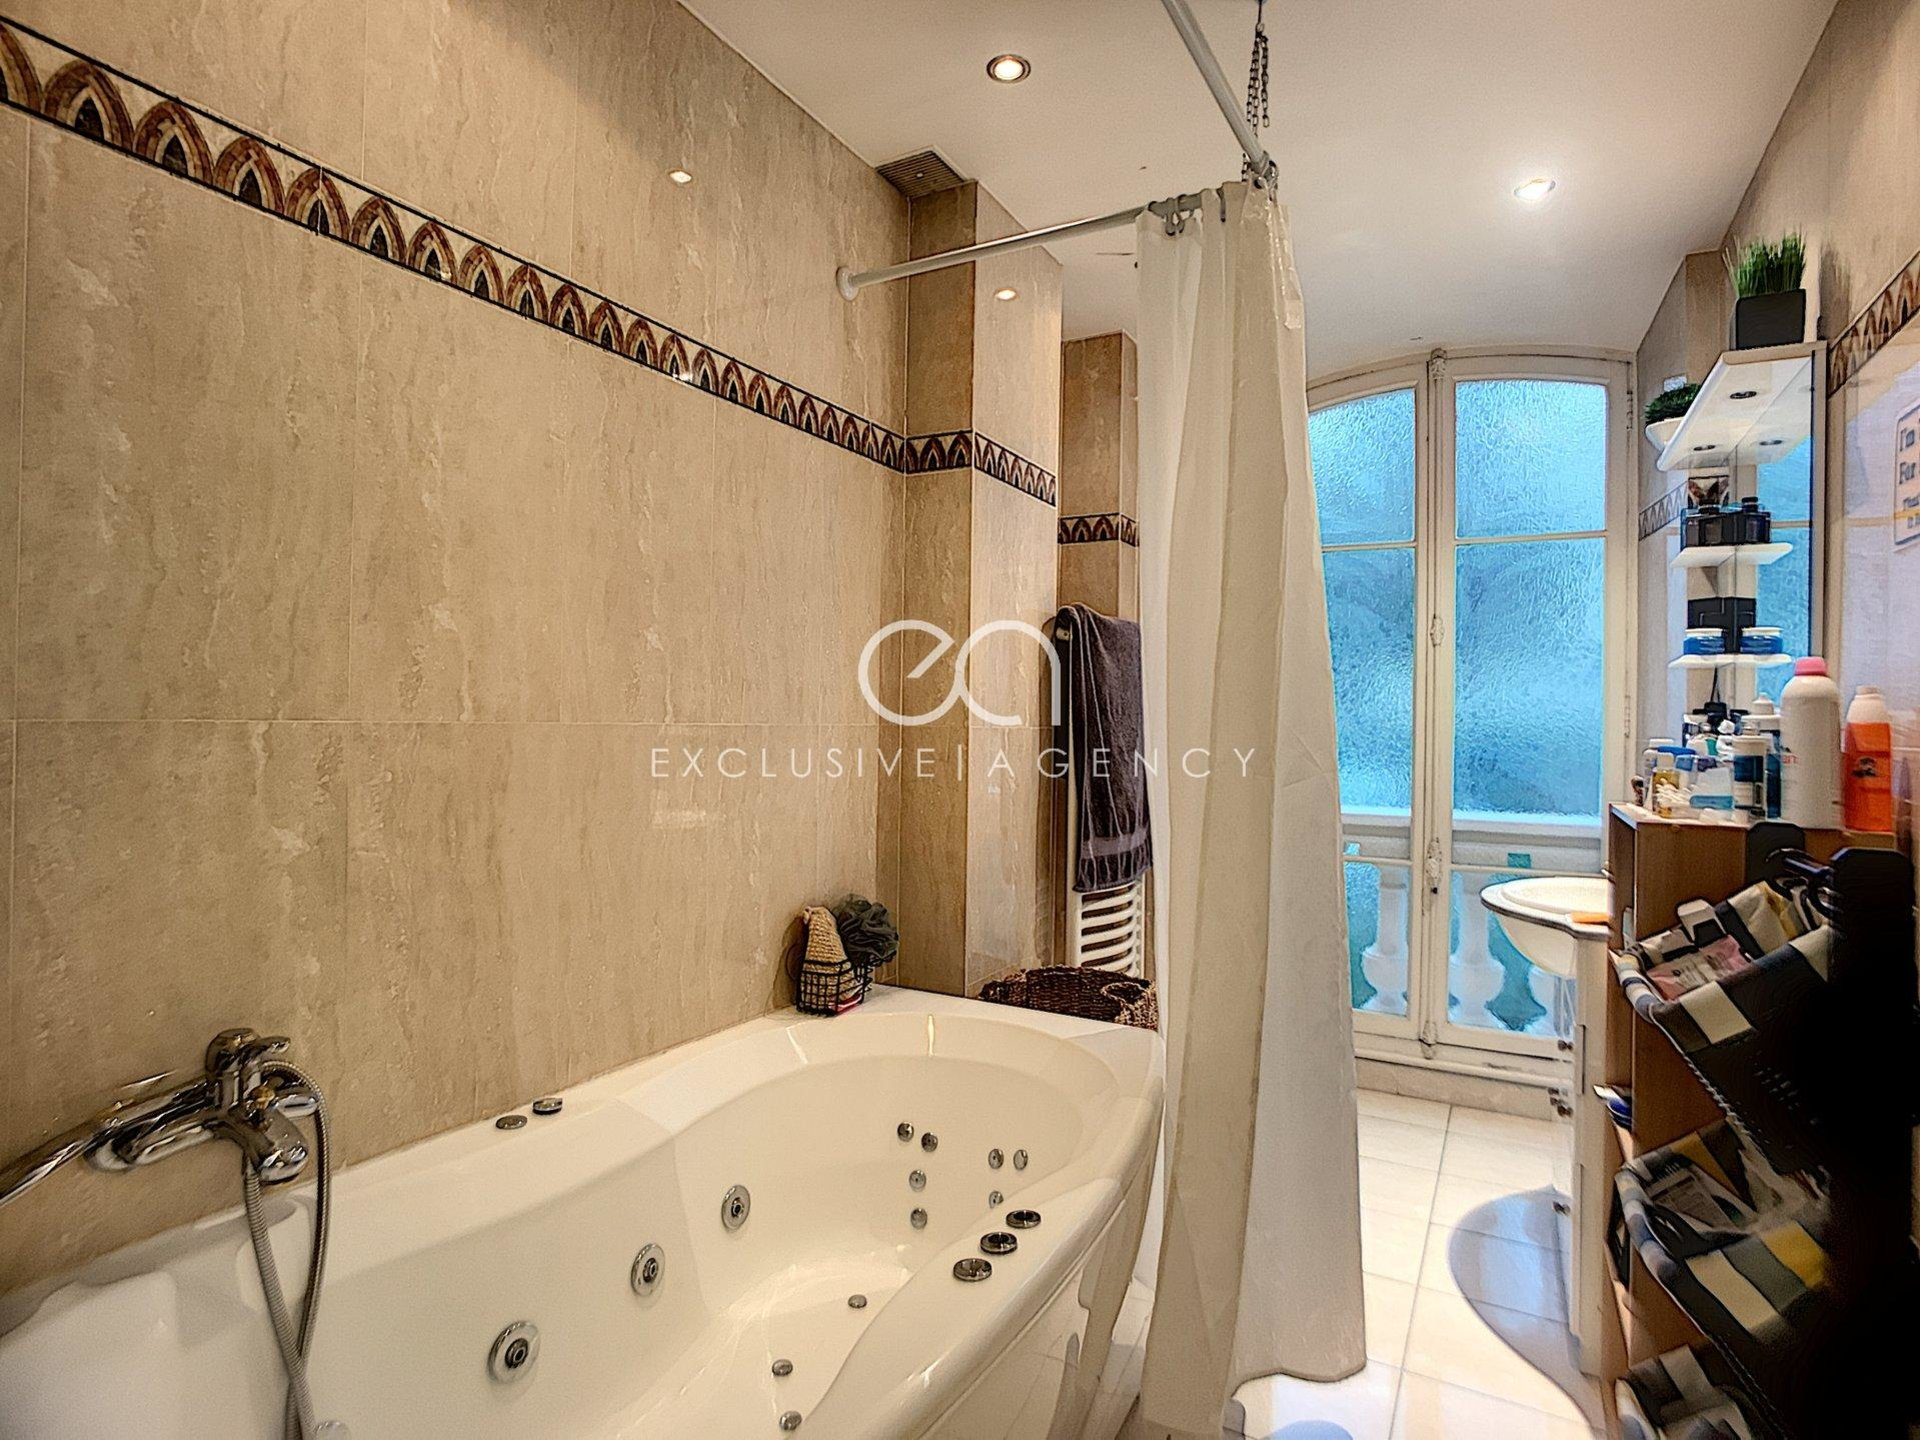 For sale Cannes 3-bedroom apartment 128m2 close to city center.